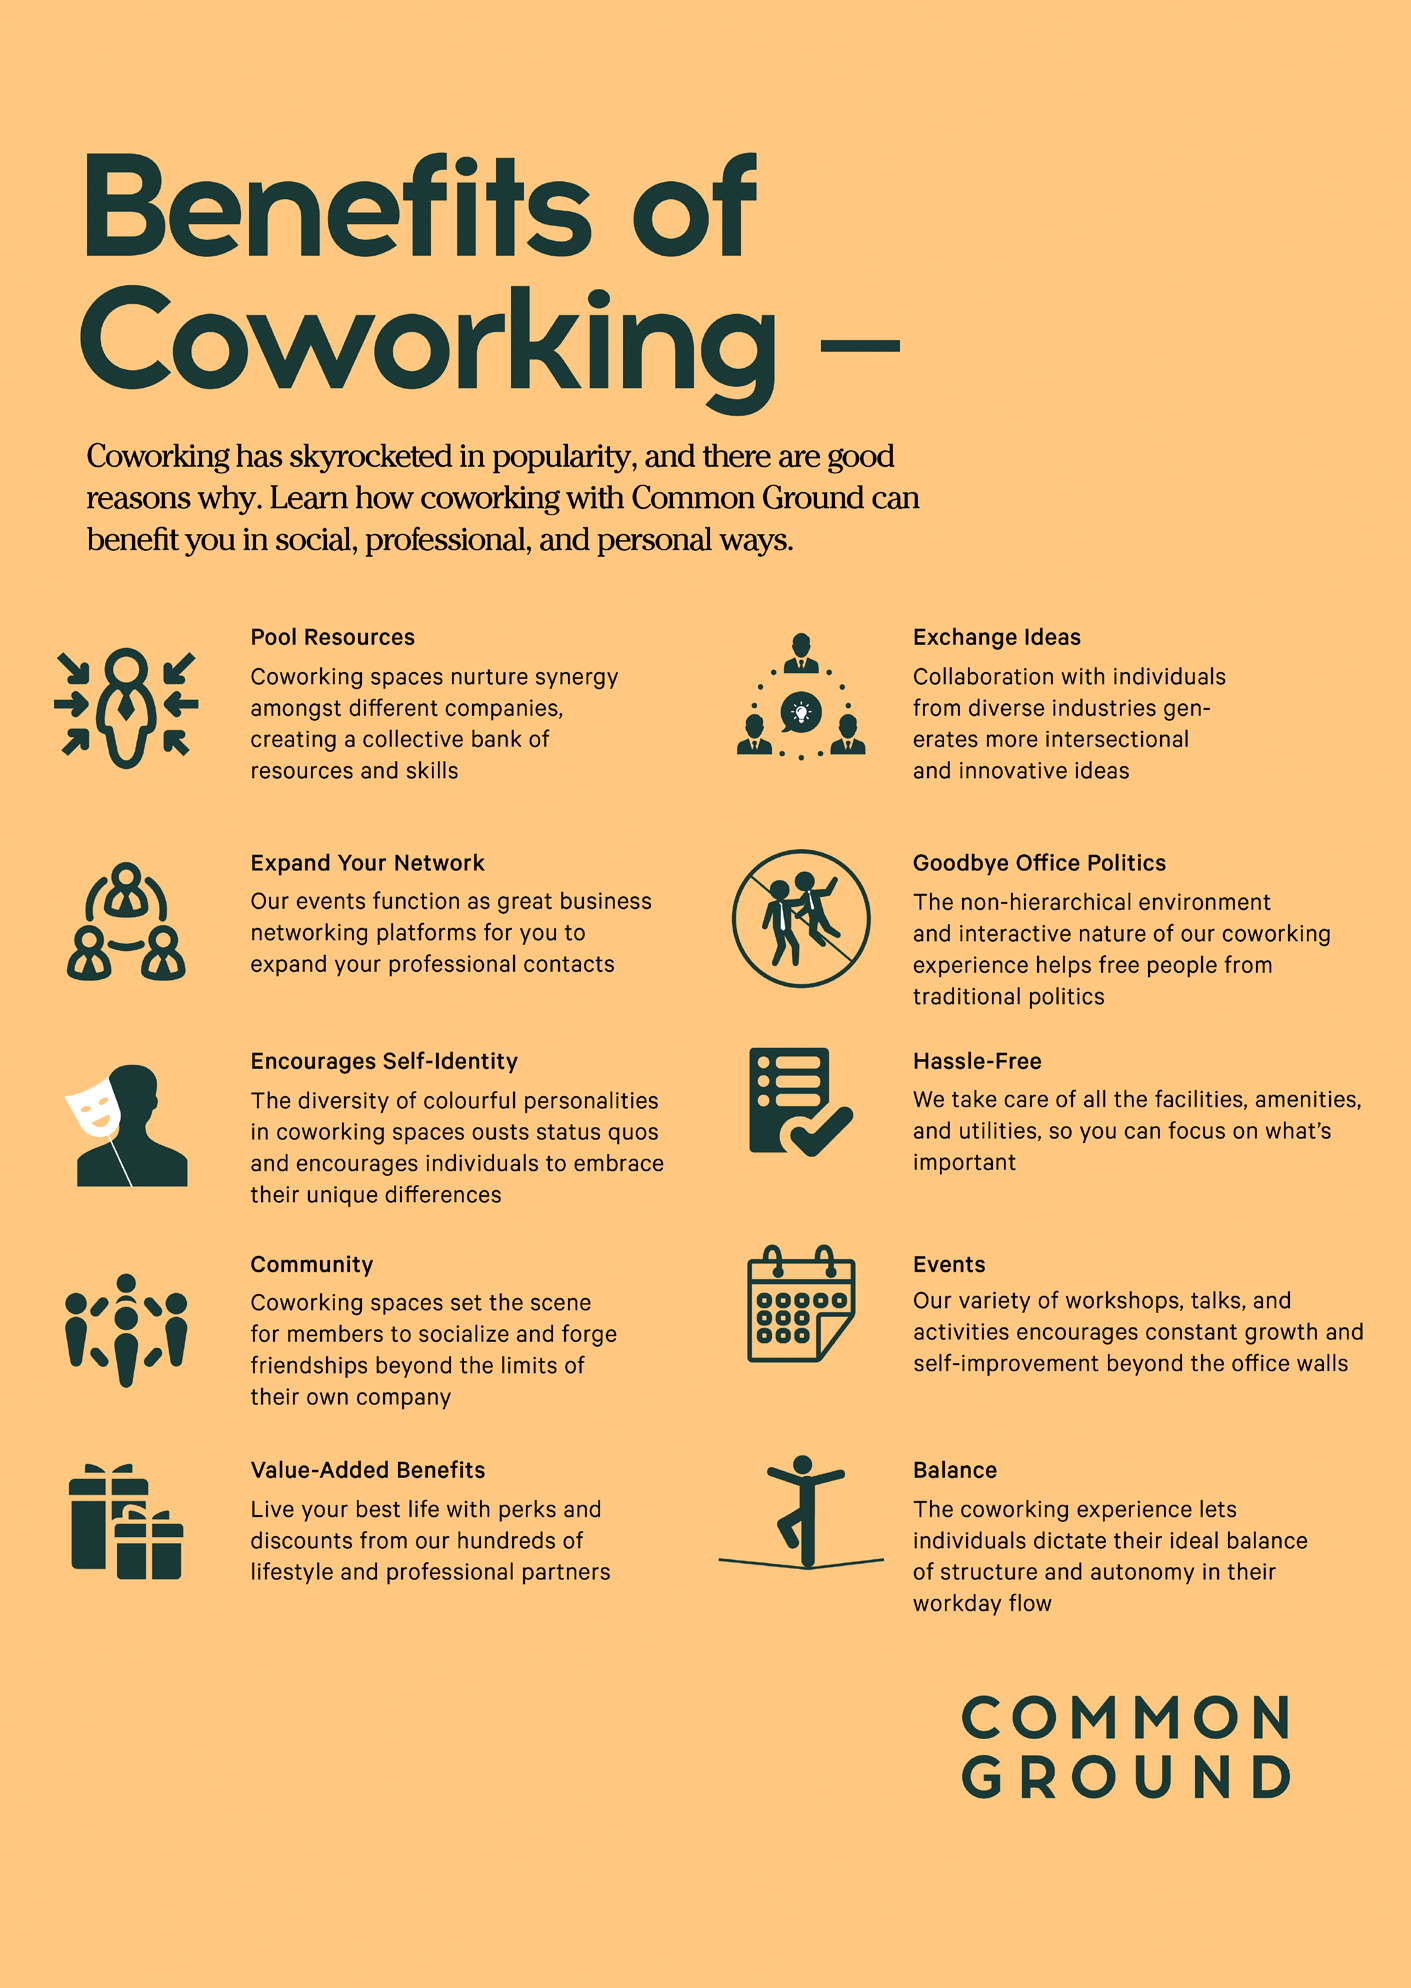 Common Ground - Benefits of Coworking